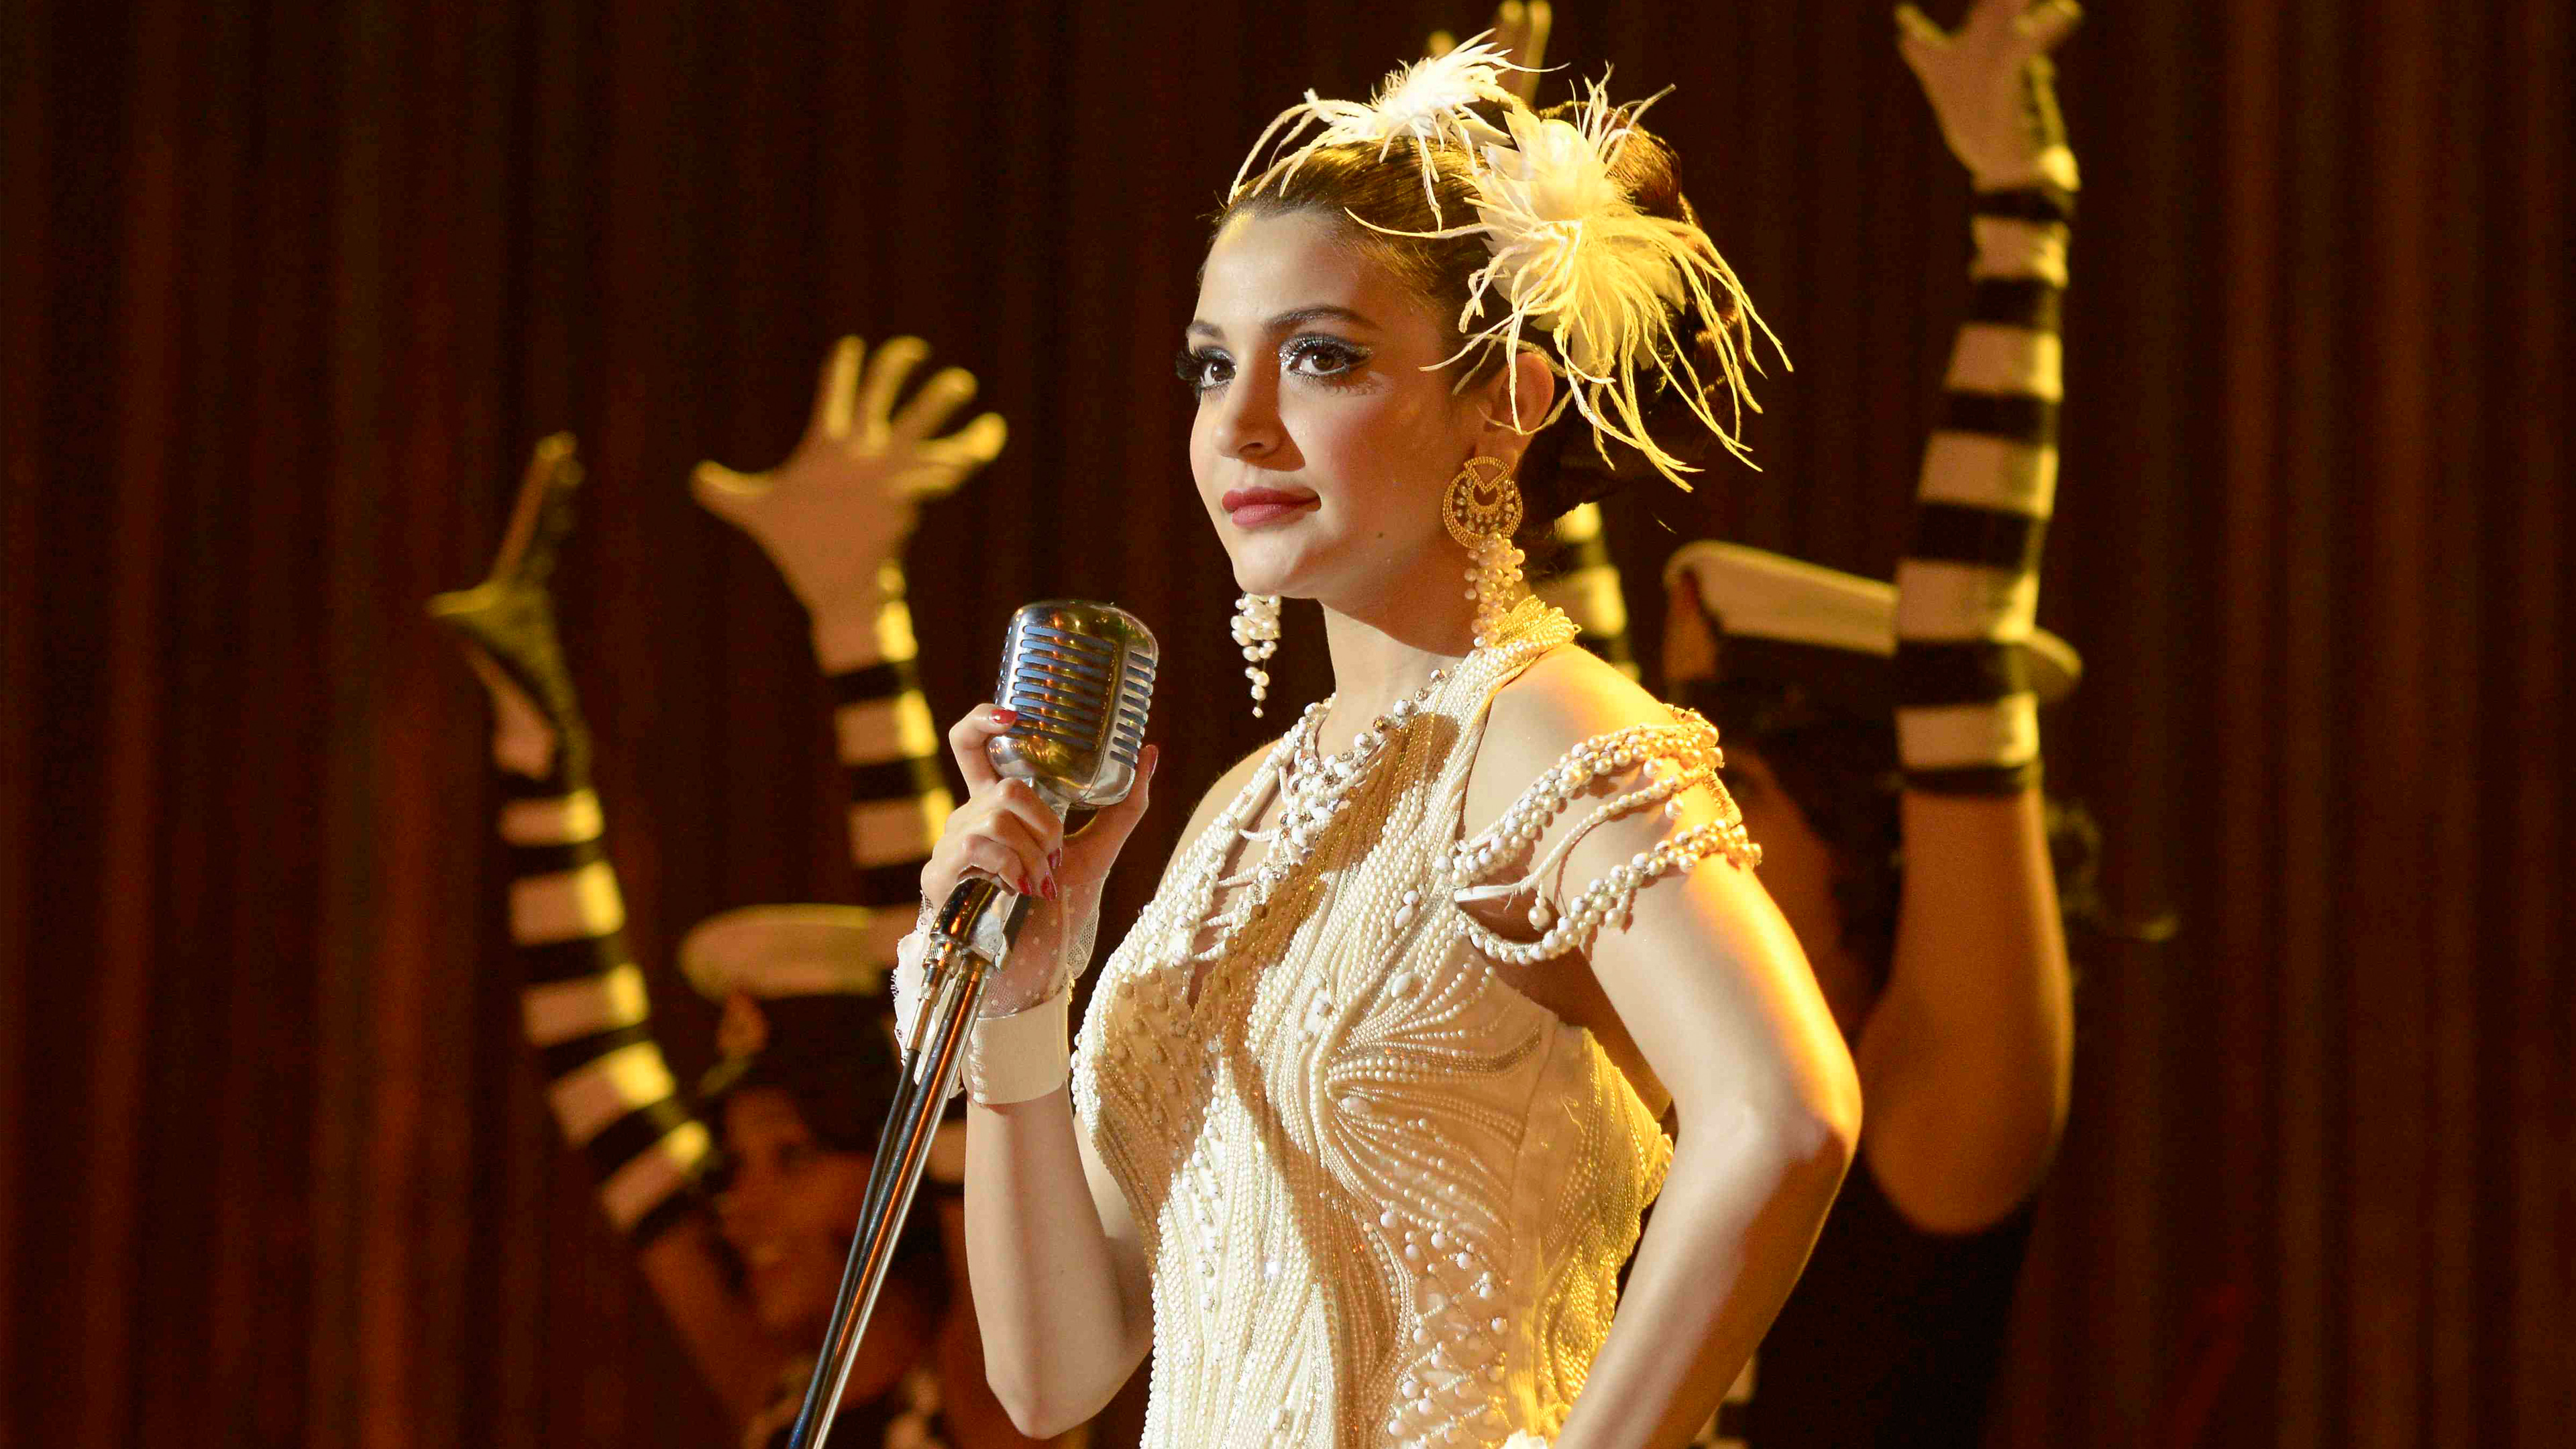 Anushka Sharma Bombay Velvet wallpaper